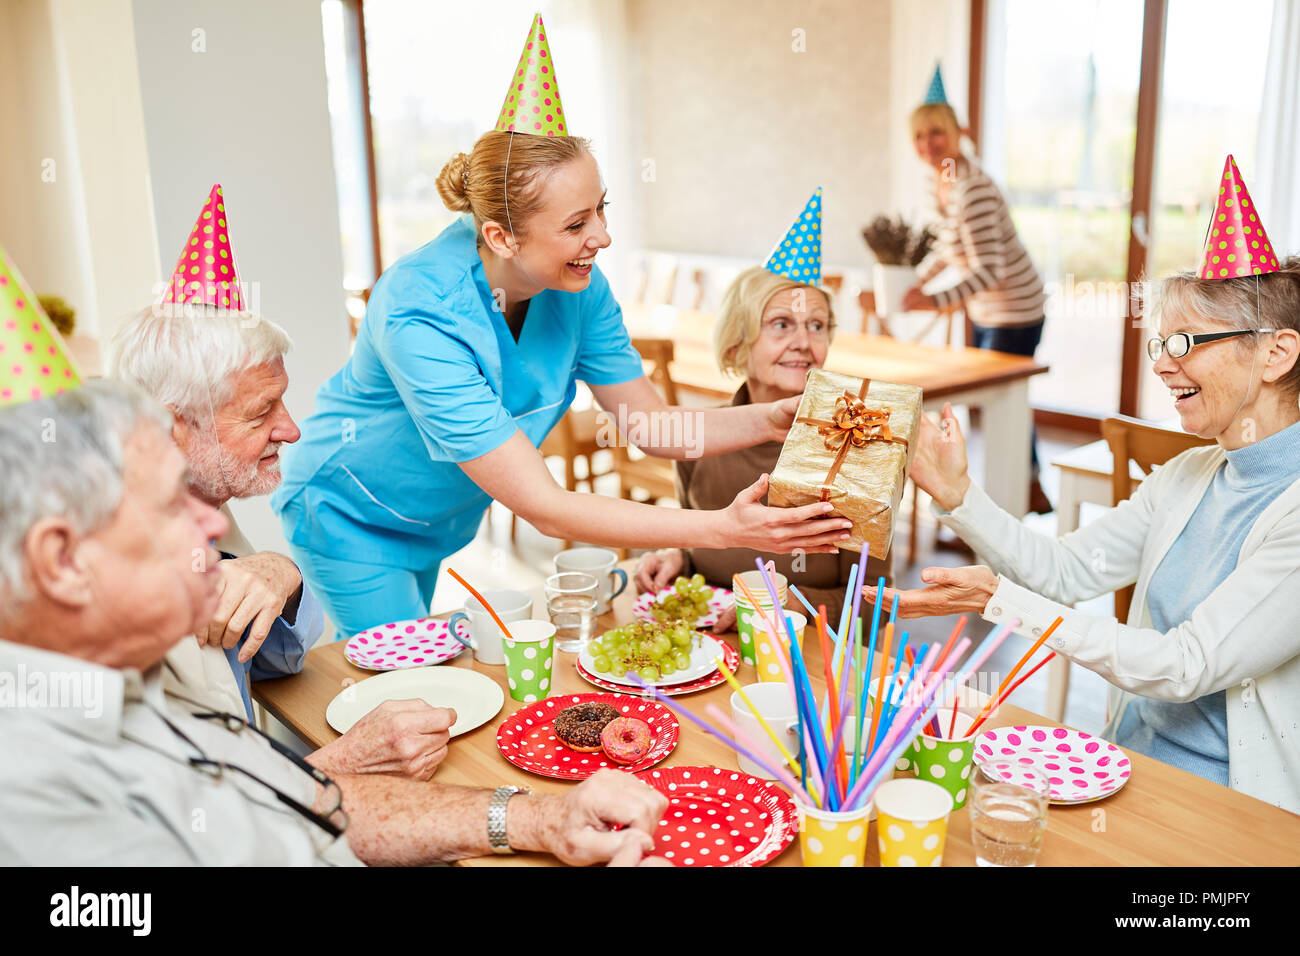 Nursing help gives a birthday present to a senior citizen at the coffee table in the retirement home - Stock Image